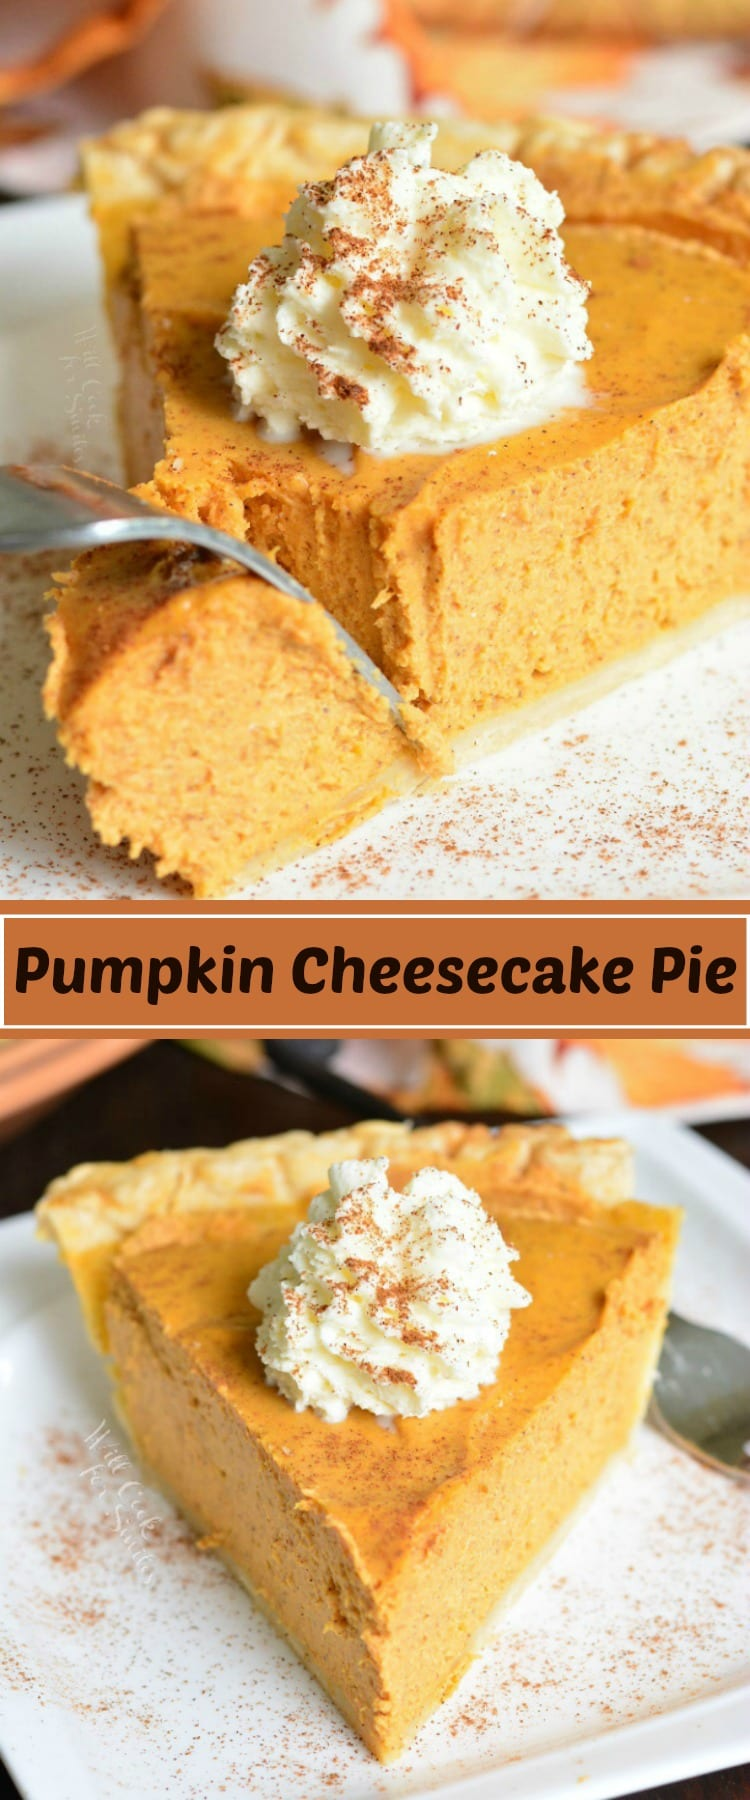 This PUMPKIN CHEESECAKE PIE is a combination of a classic pumpkin pie with silky creaminess of a cheesecake. This easy dessert is perfect to serve at holiday dinners or just because you feel like having a pumpkin treat. #pumpkin #pie #cheesecake #dessert #holiday #pumpkinpie